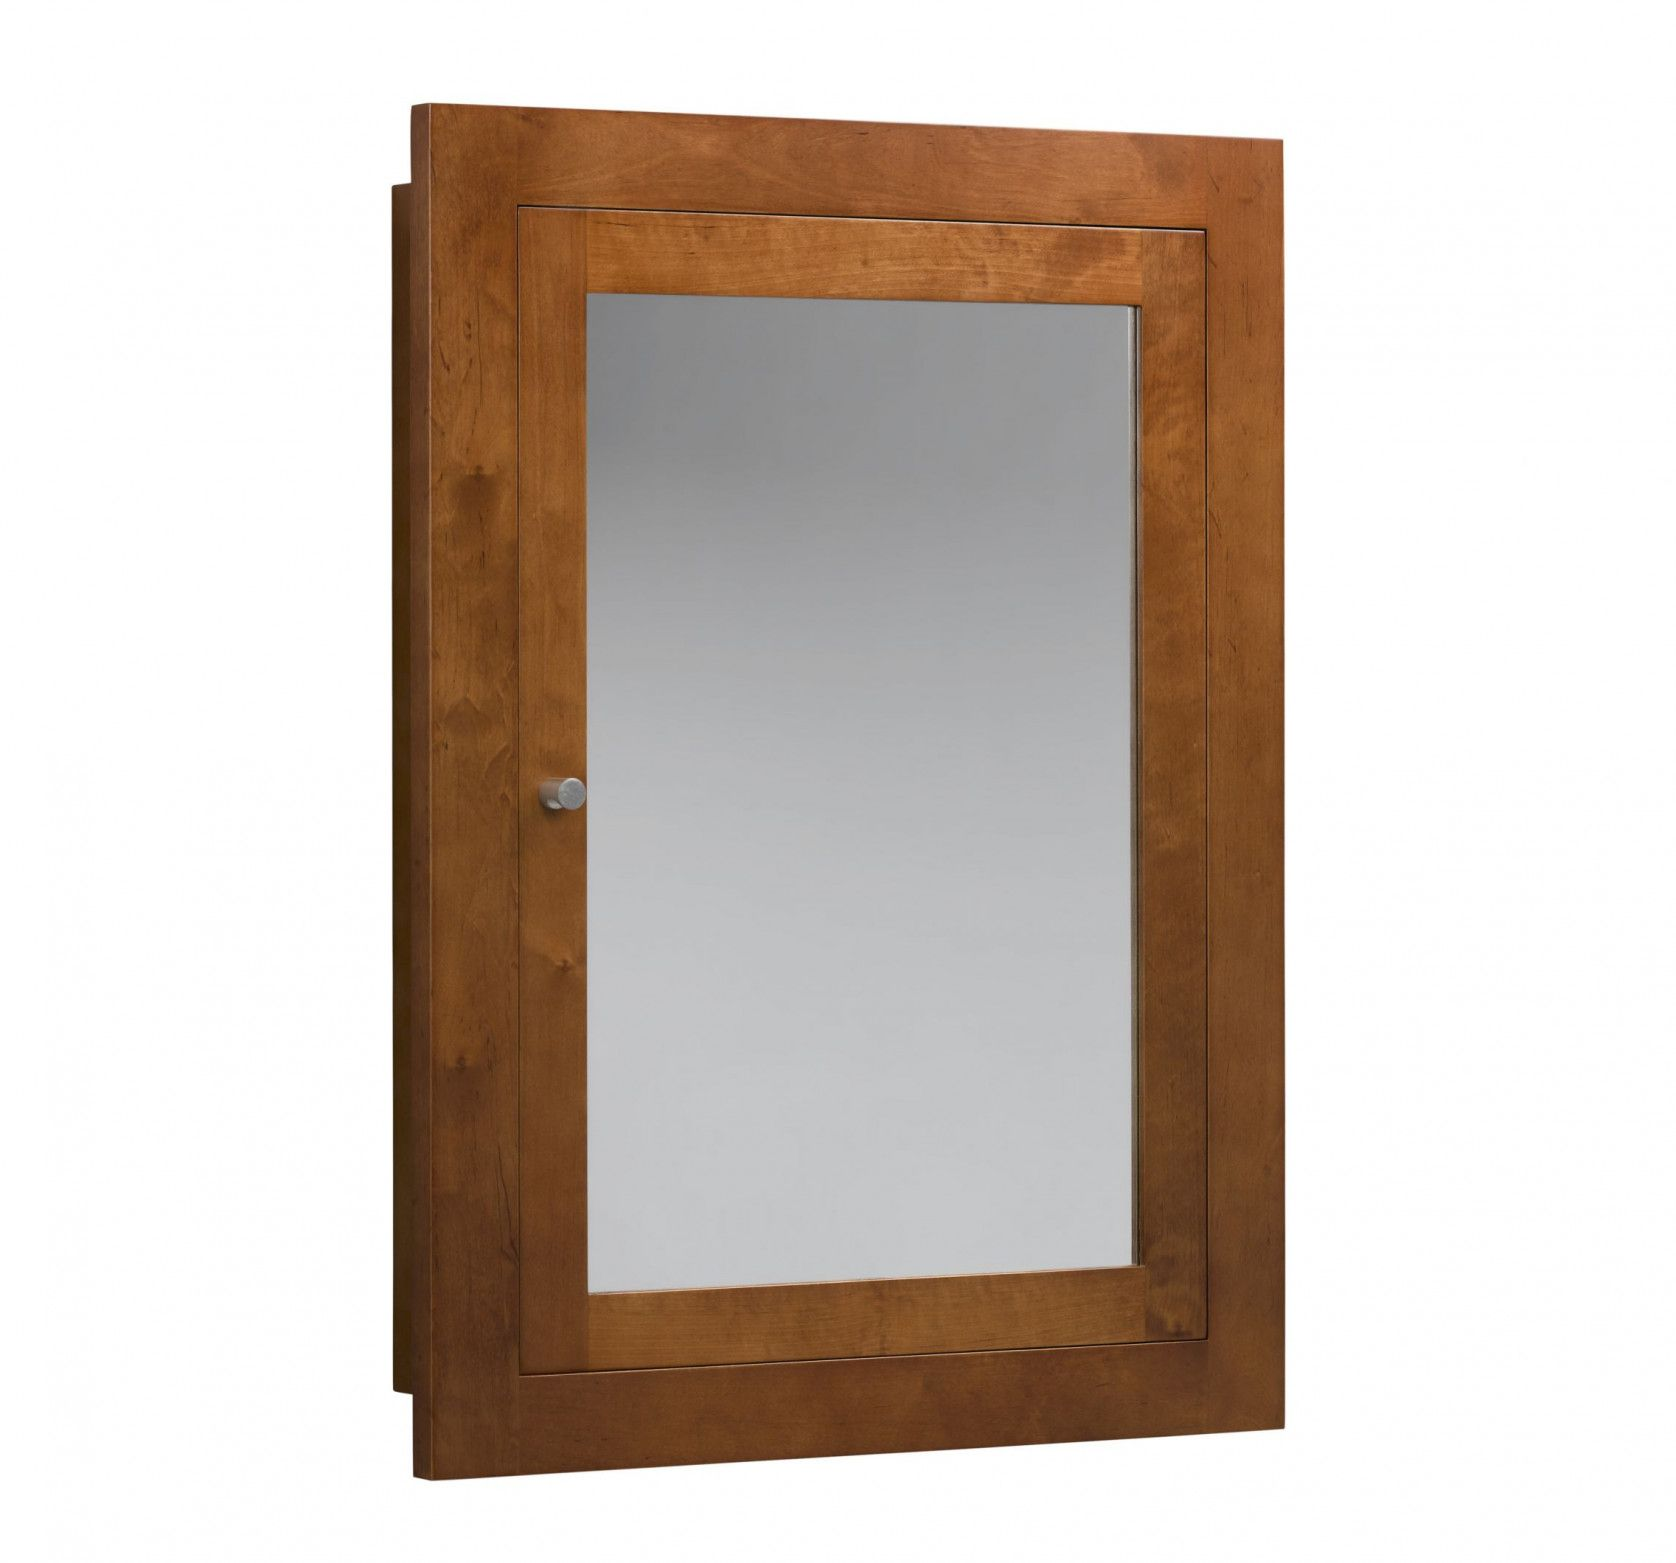 50 Recessed Wood Medicine Cabinets With Mirrors Kitchen Decor